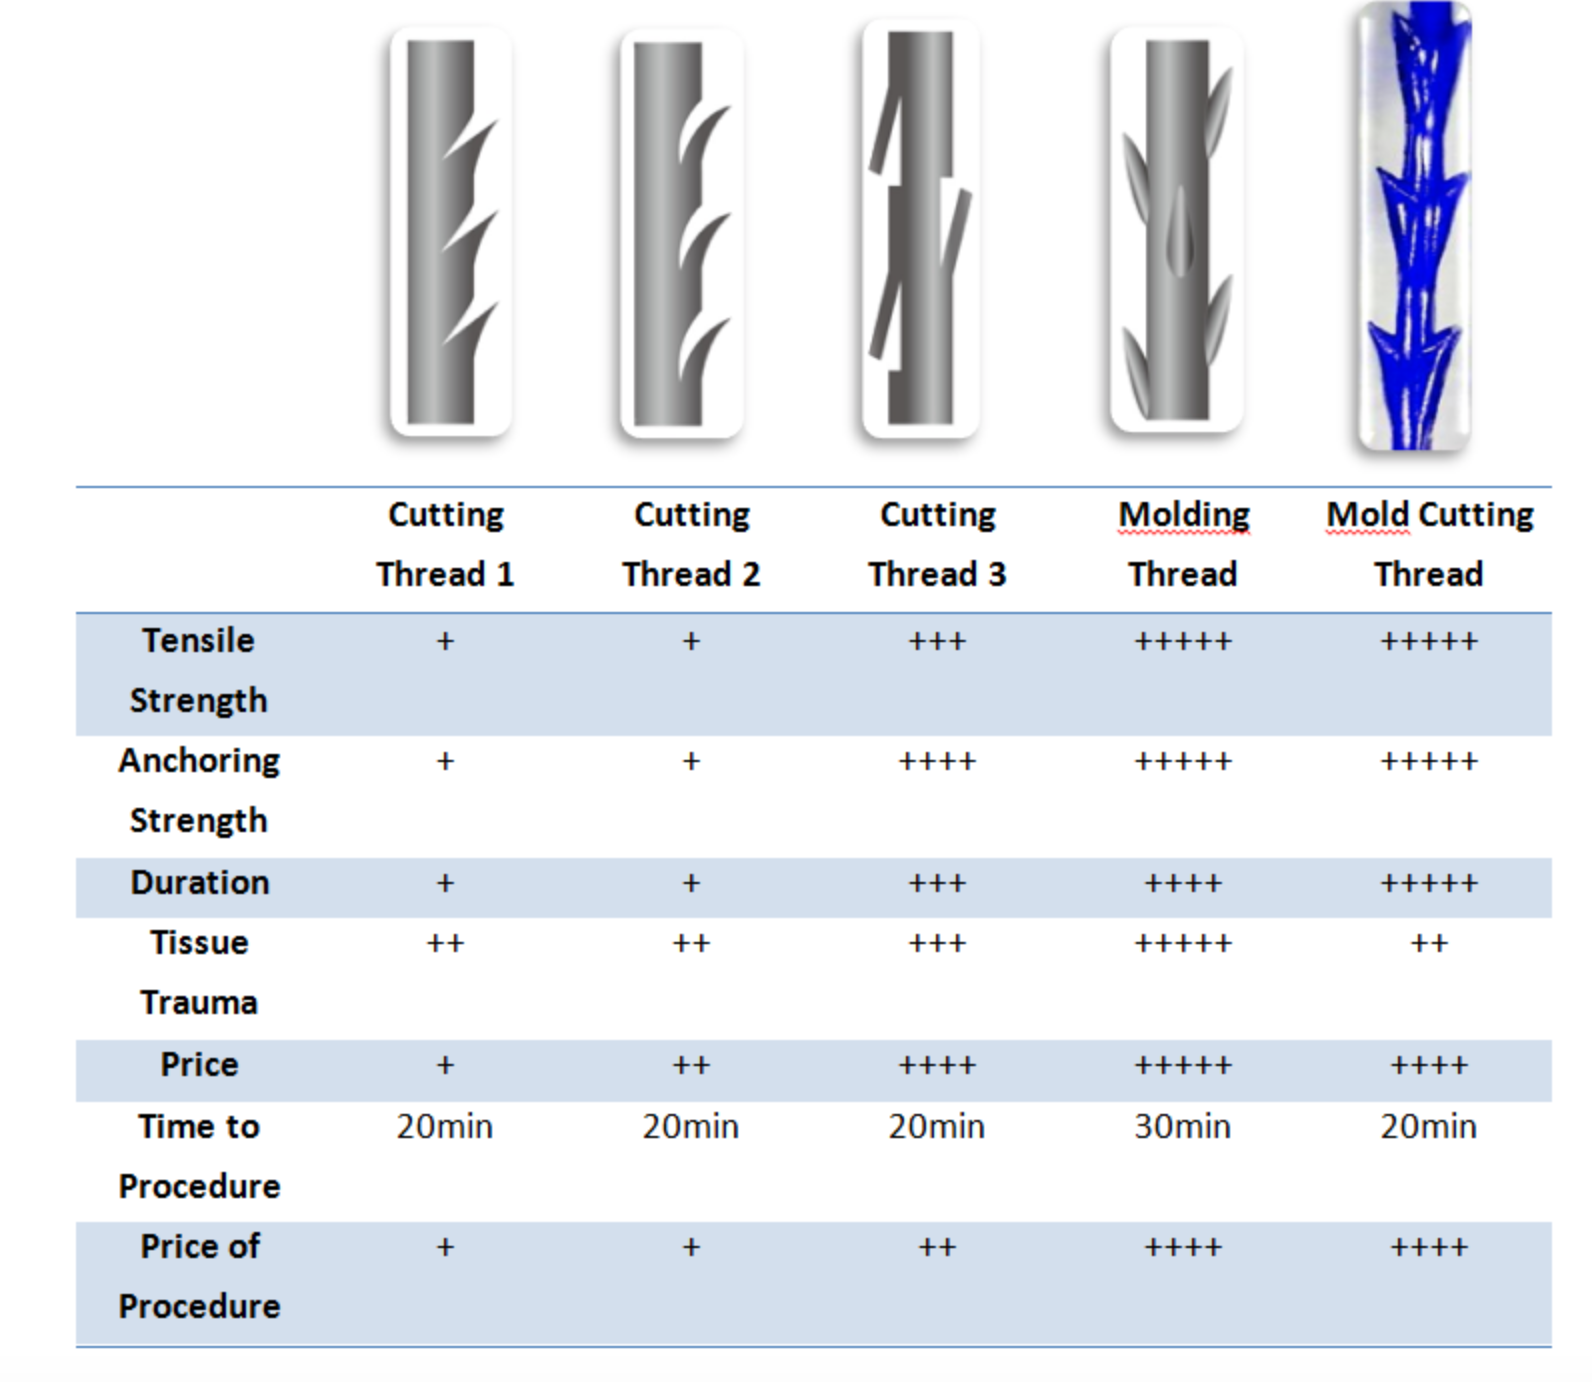 differences between cog and molding cog pro threads